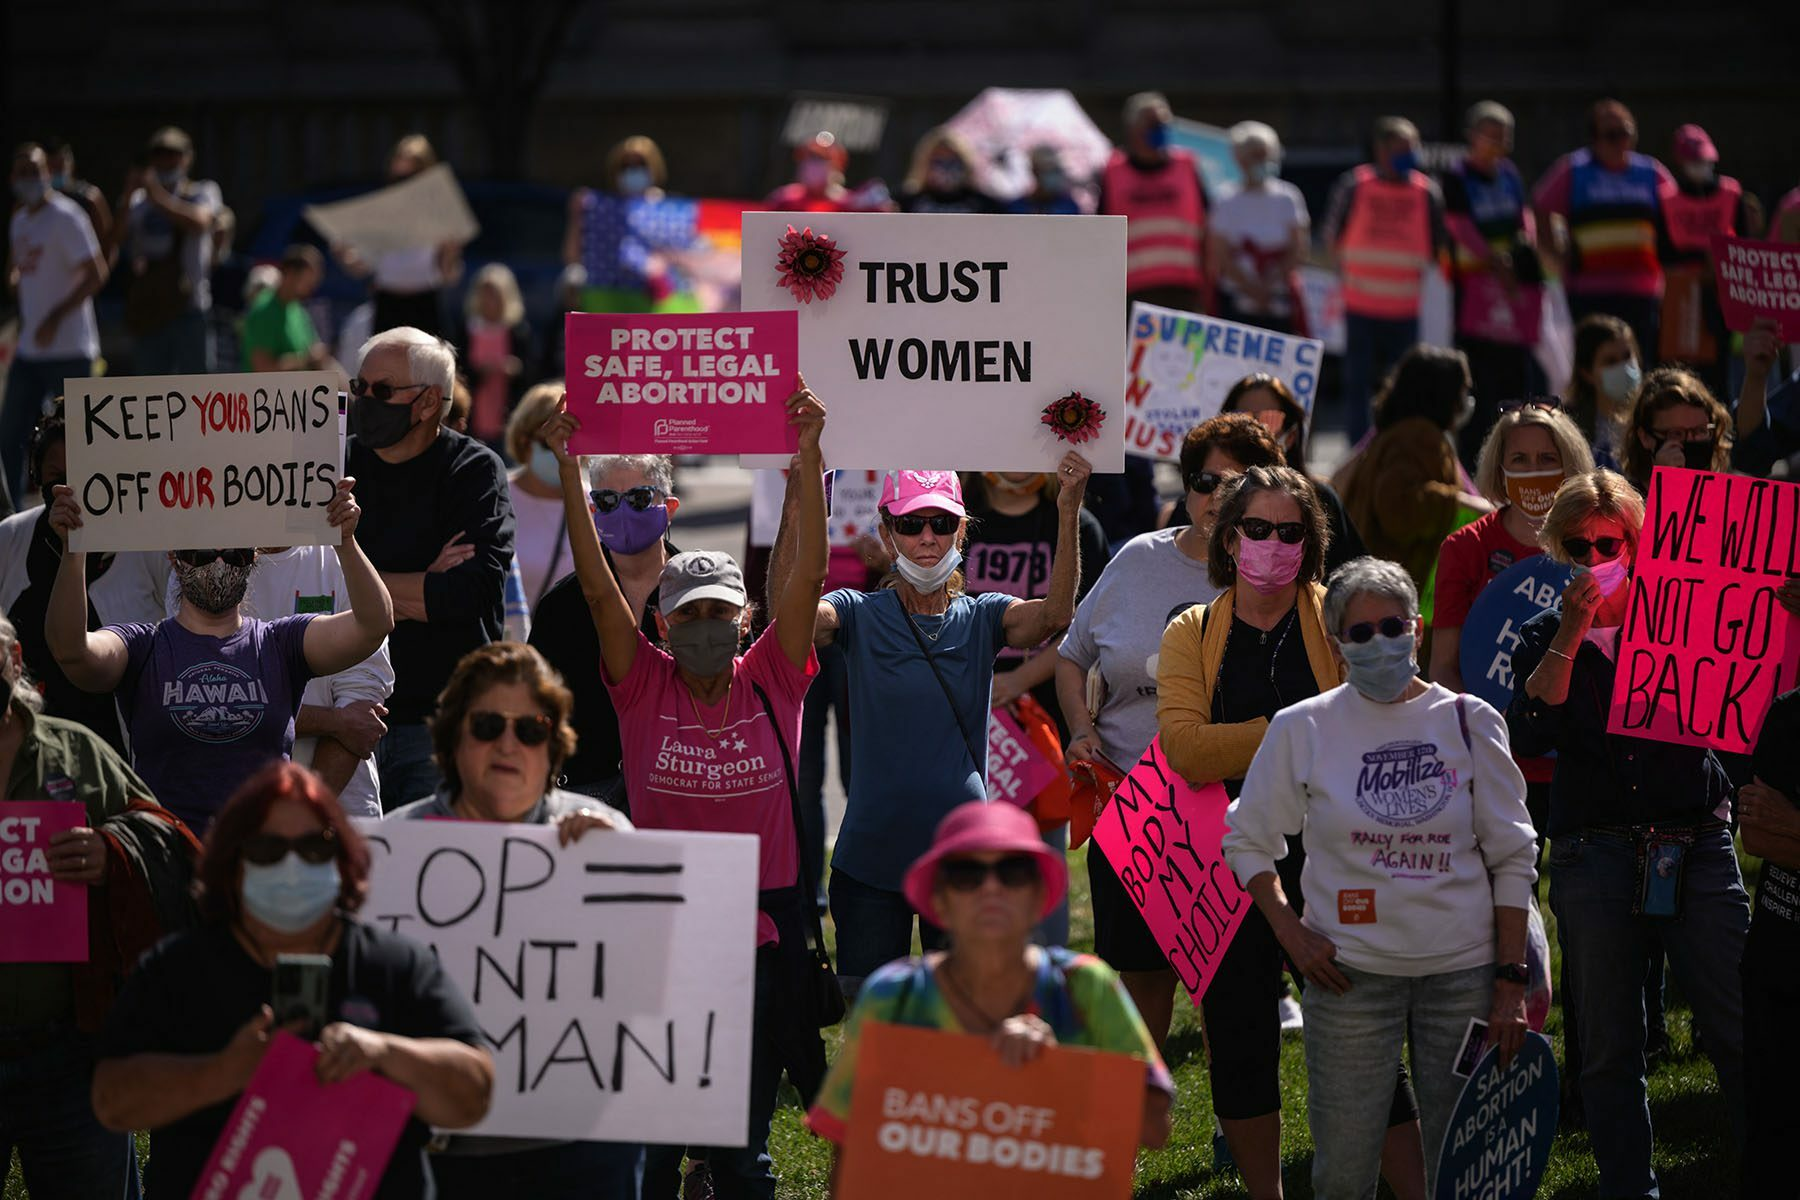 A crowd of abortion rights activists carry signs while demonstrating.